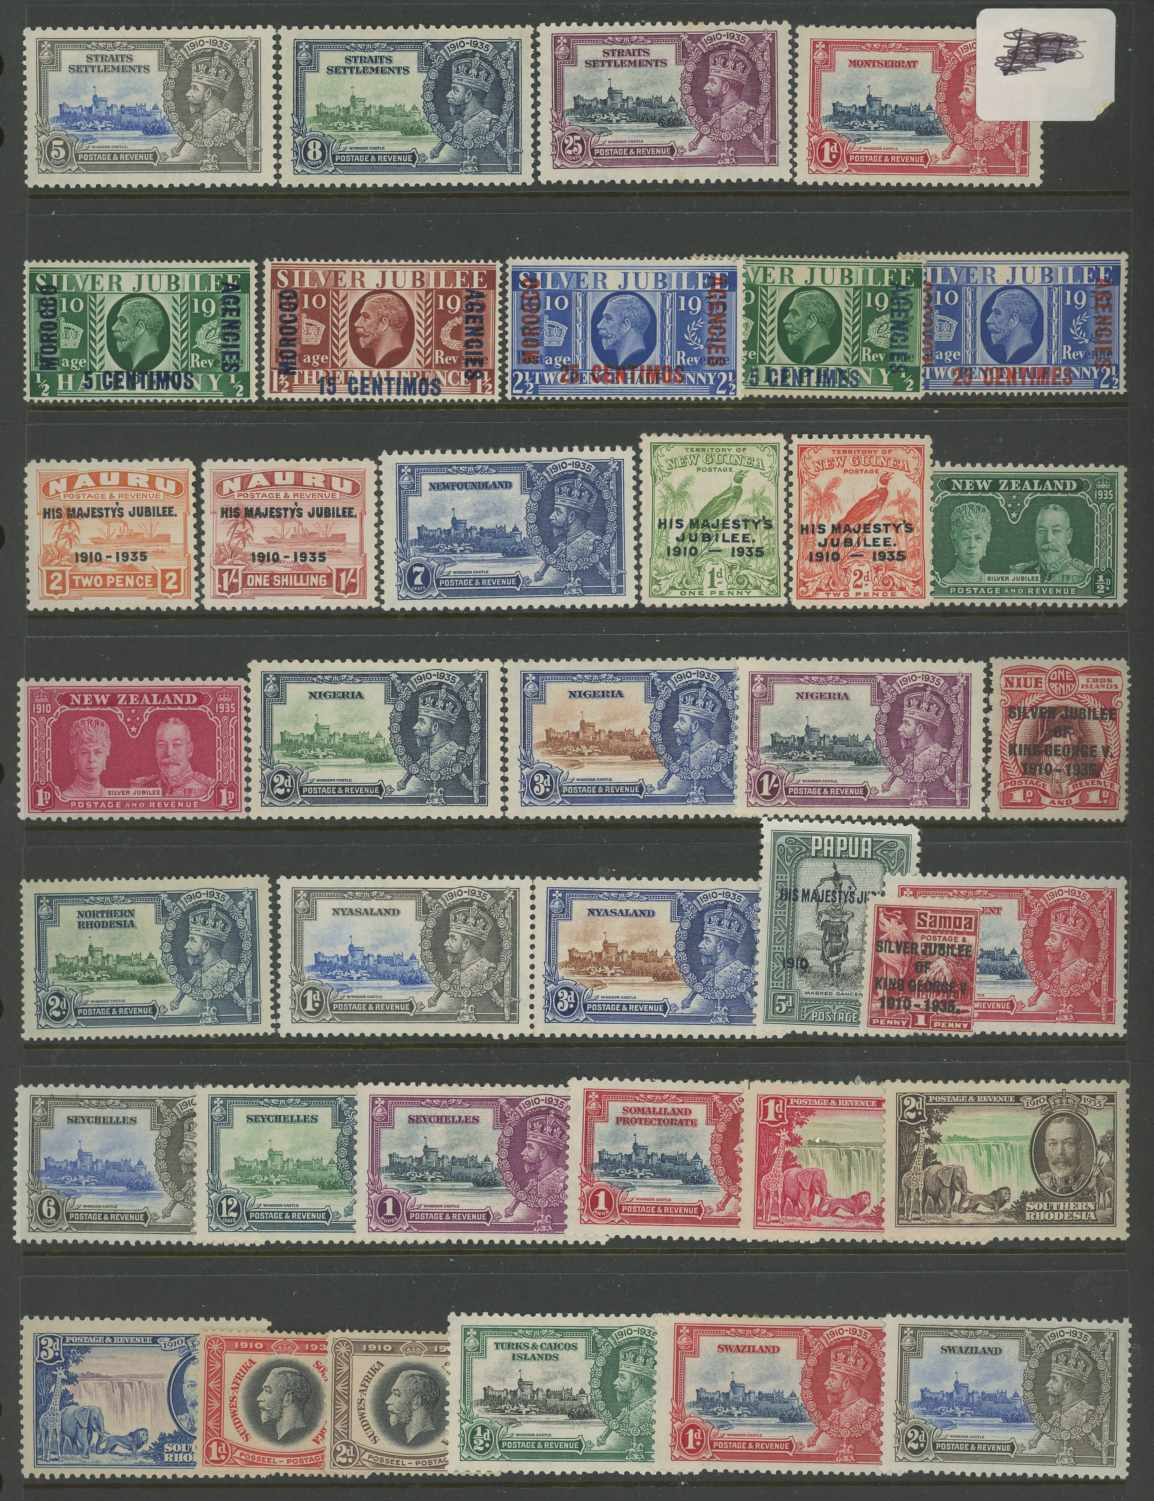 1935 Silver Jubilee odd values to 1/- Mint on Hagner sheets. - Image 4 of 4